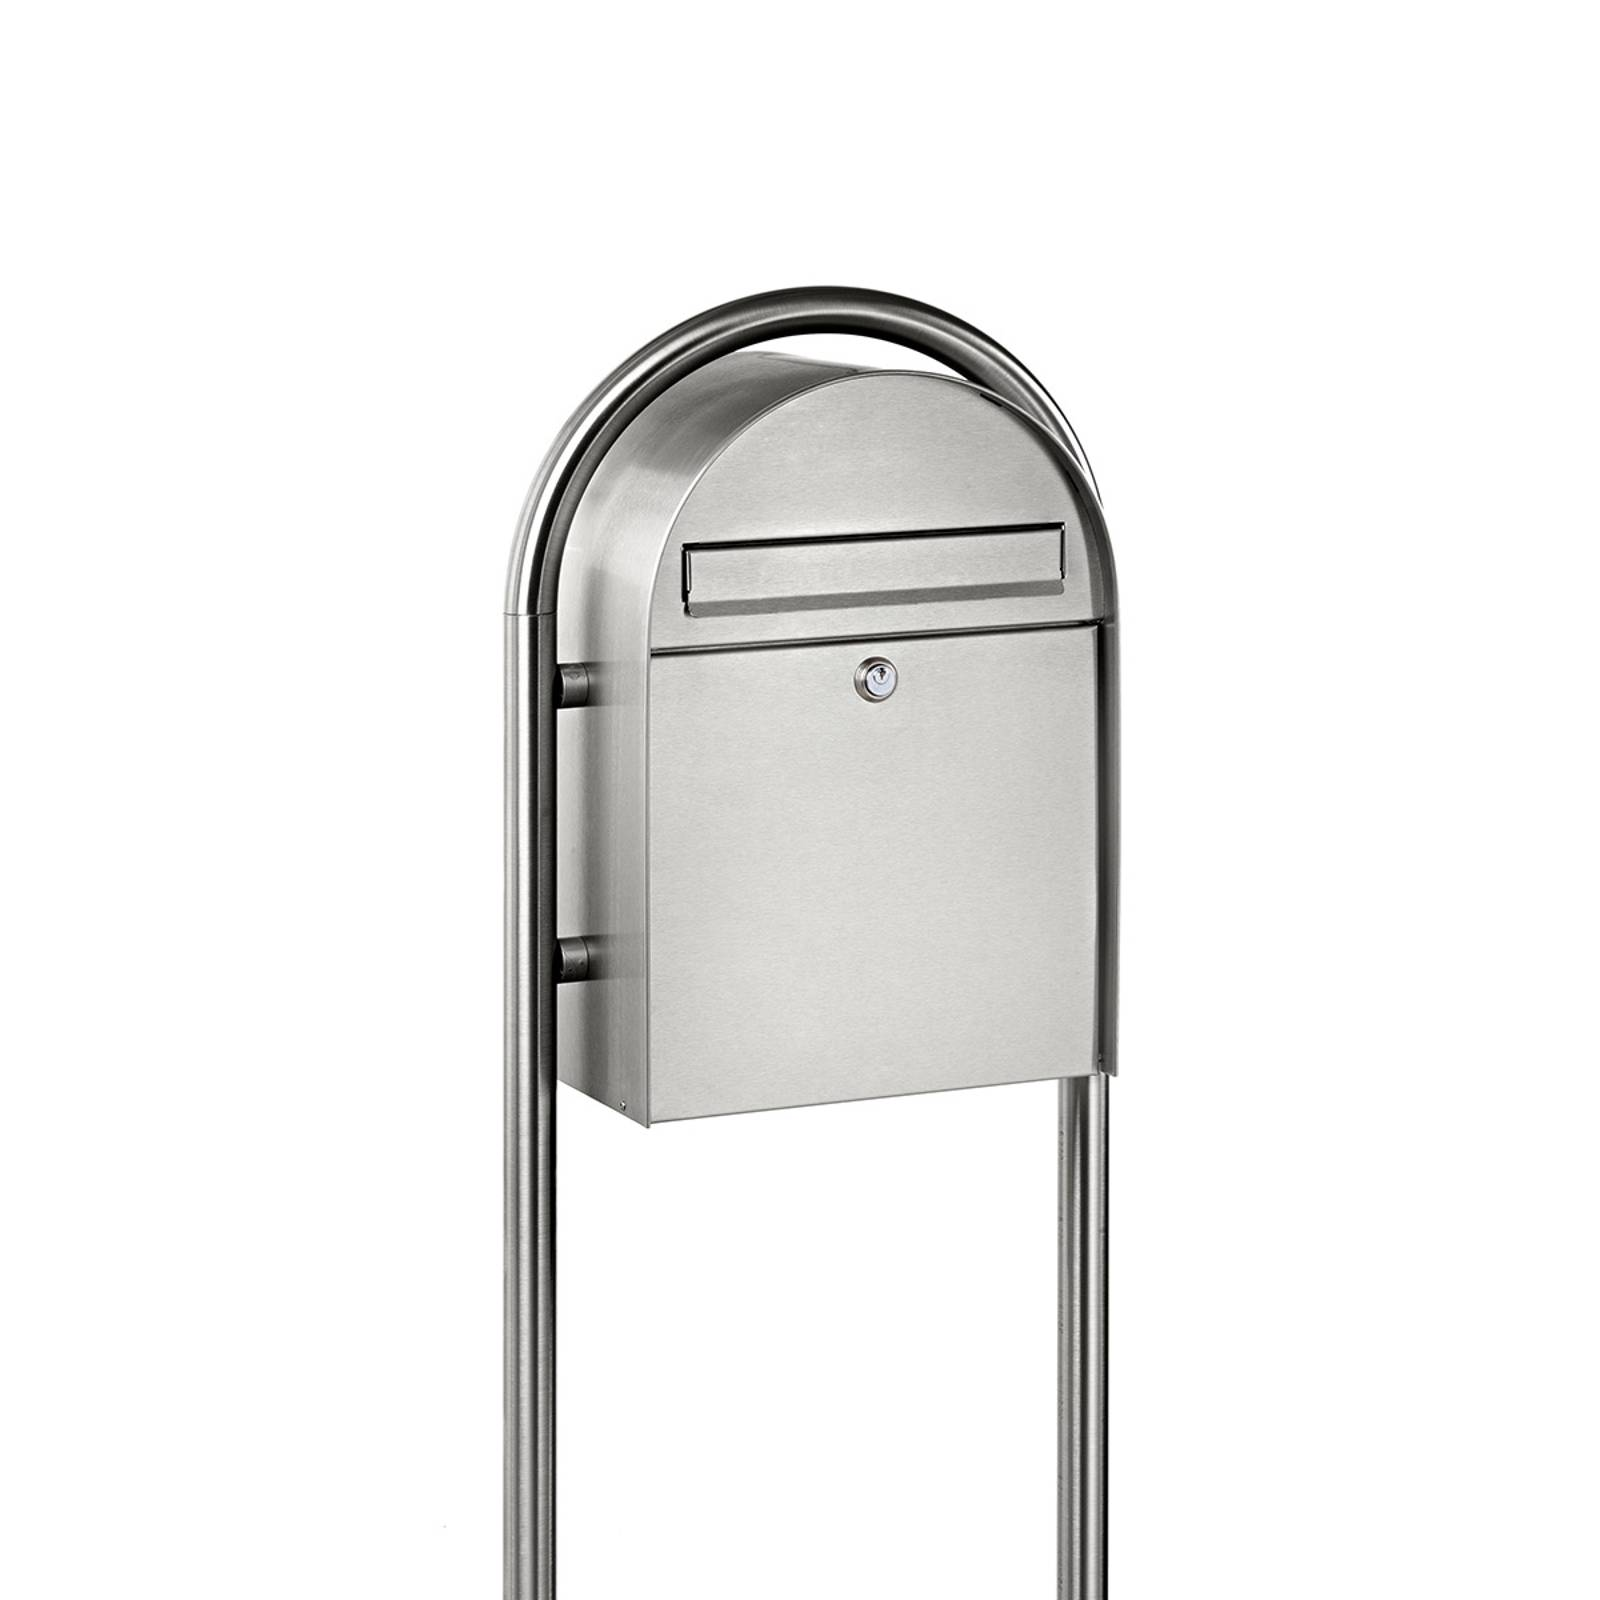 Stainless steel round arch holder 3685 Ni 36.3 cm from Burgwächter